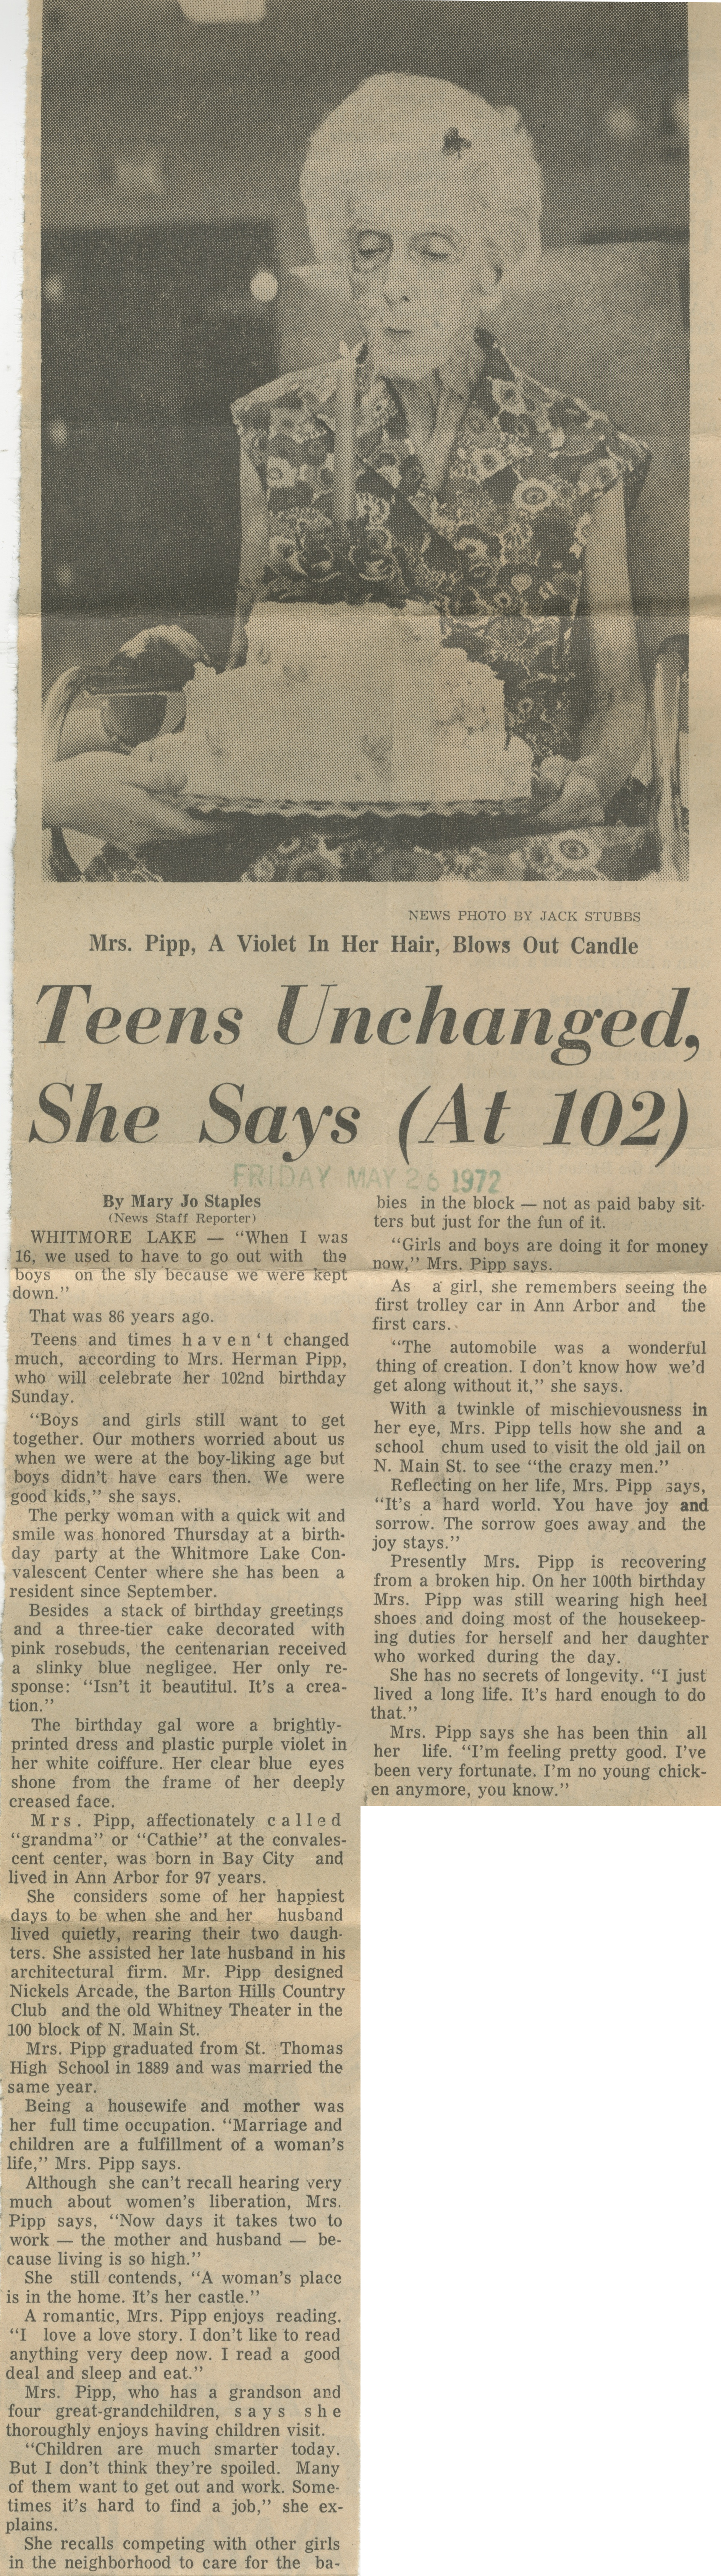 Teens Unchanged She Says (At 102) image